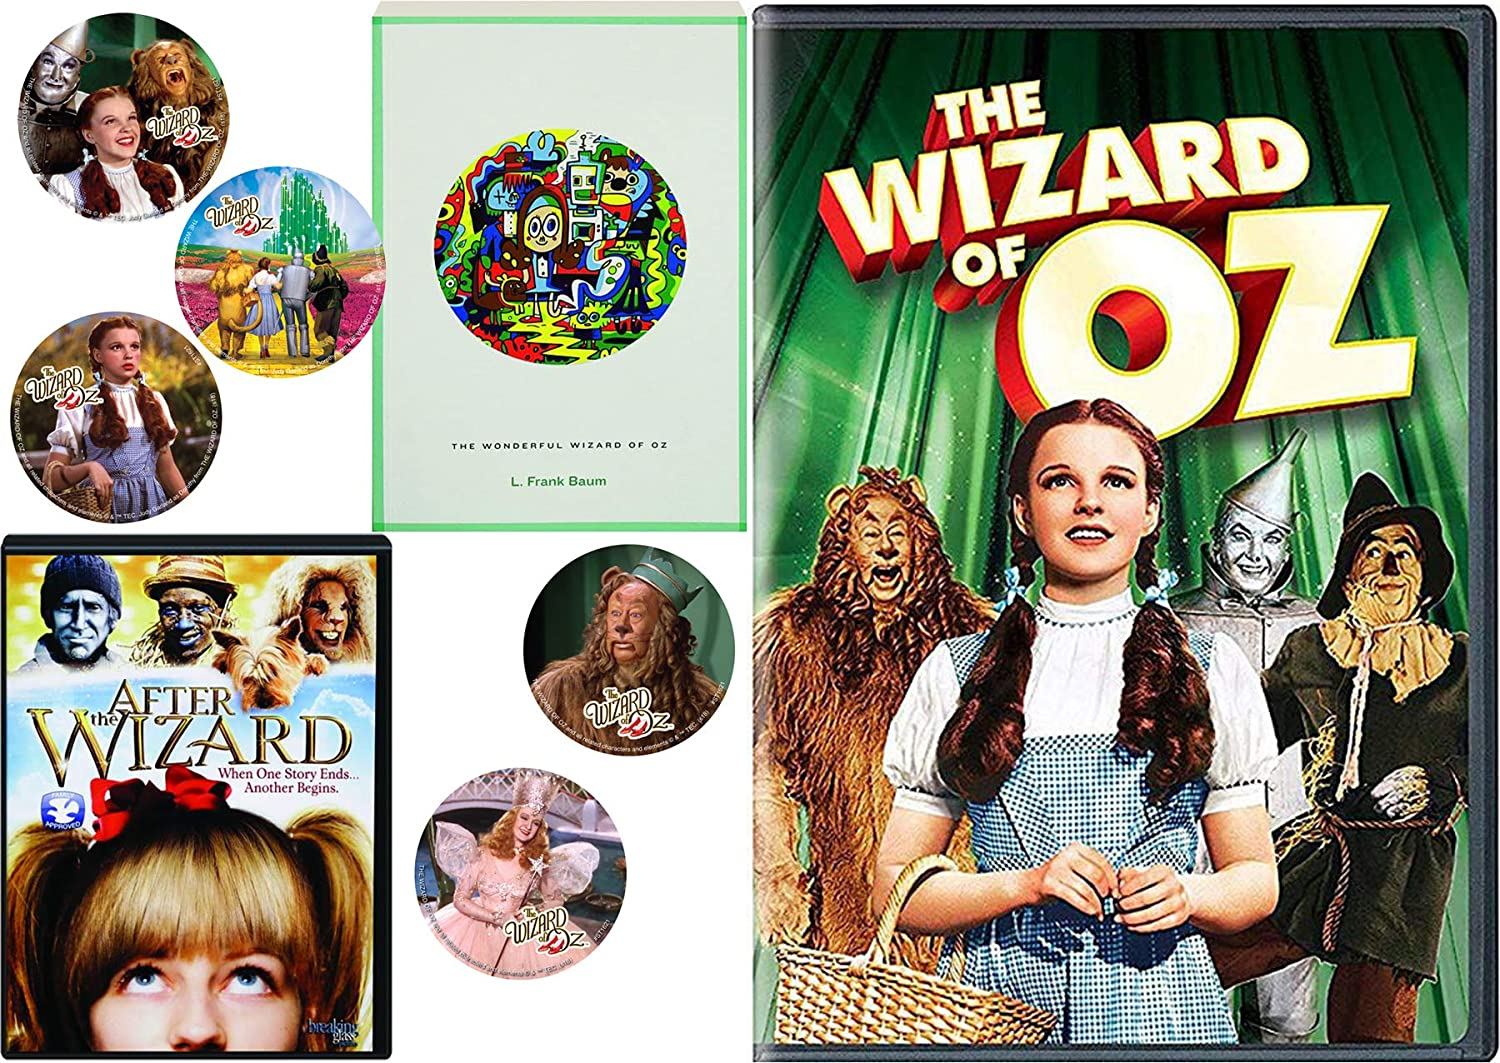 The Classic Story Book L. Frank Baum Wonderful Wizard of Oz & Musical DVD feature + Bonus Dorothy Toto Tin Man Cowardly Lion Stickers kids Read & Watch Pack After the Wizard Double Feature Movie Set